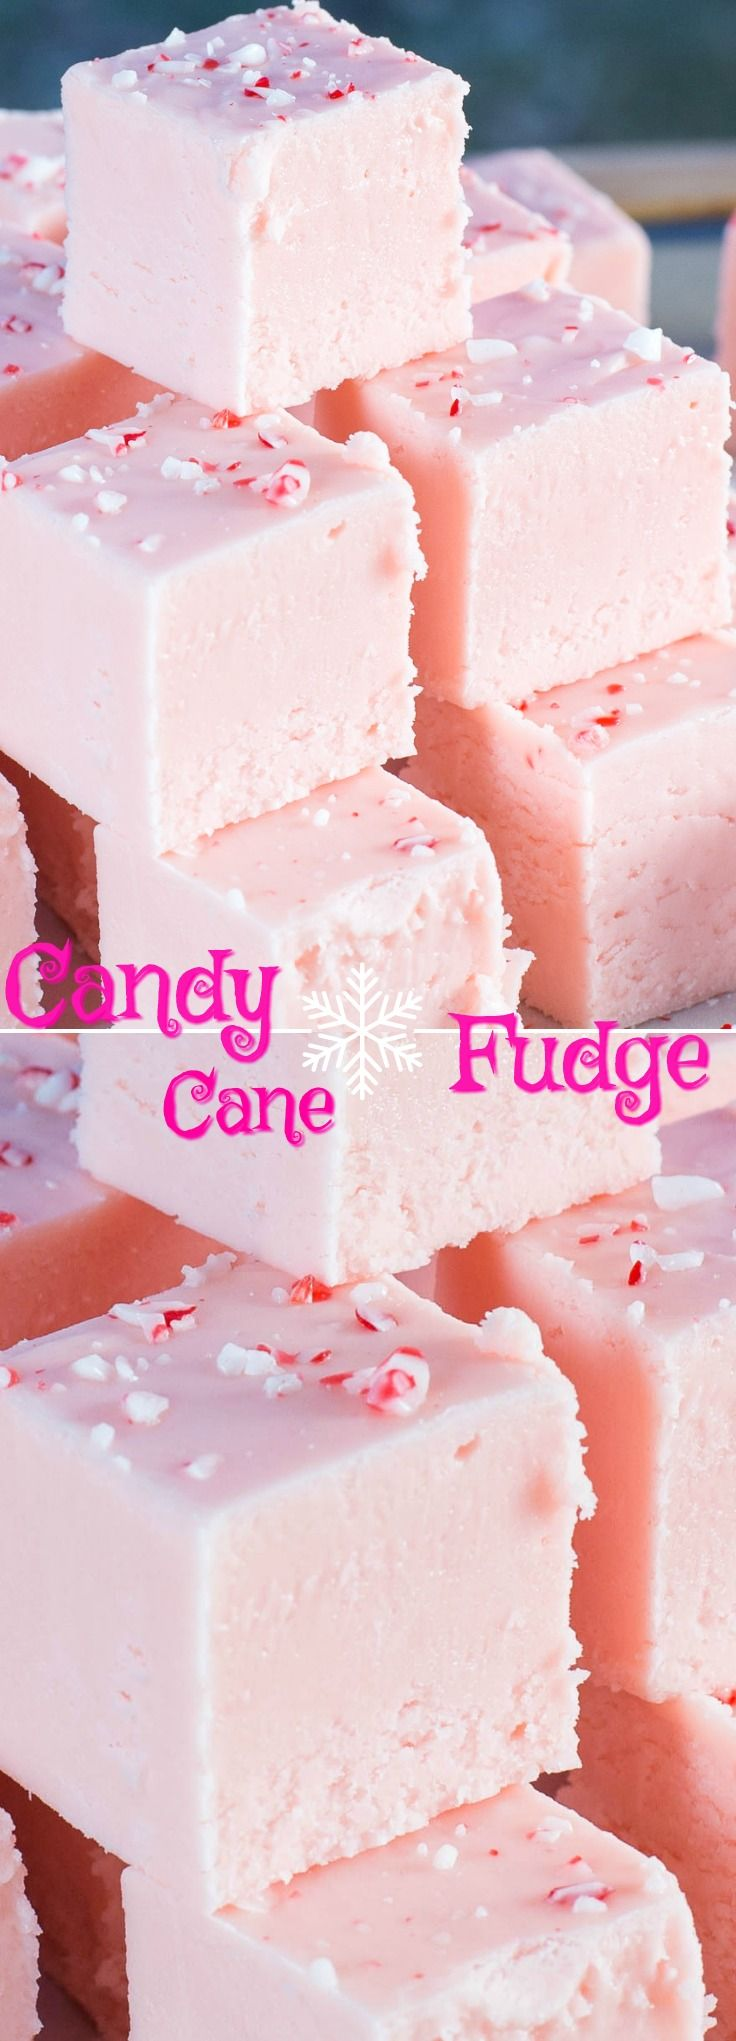 This Candy Cane Fudge recipe is incredible! Creamy, smooth and loaded with candy cane flavour! A must make Holiday Treat.